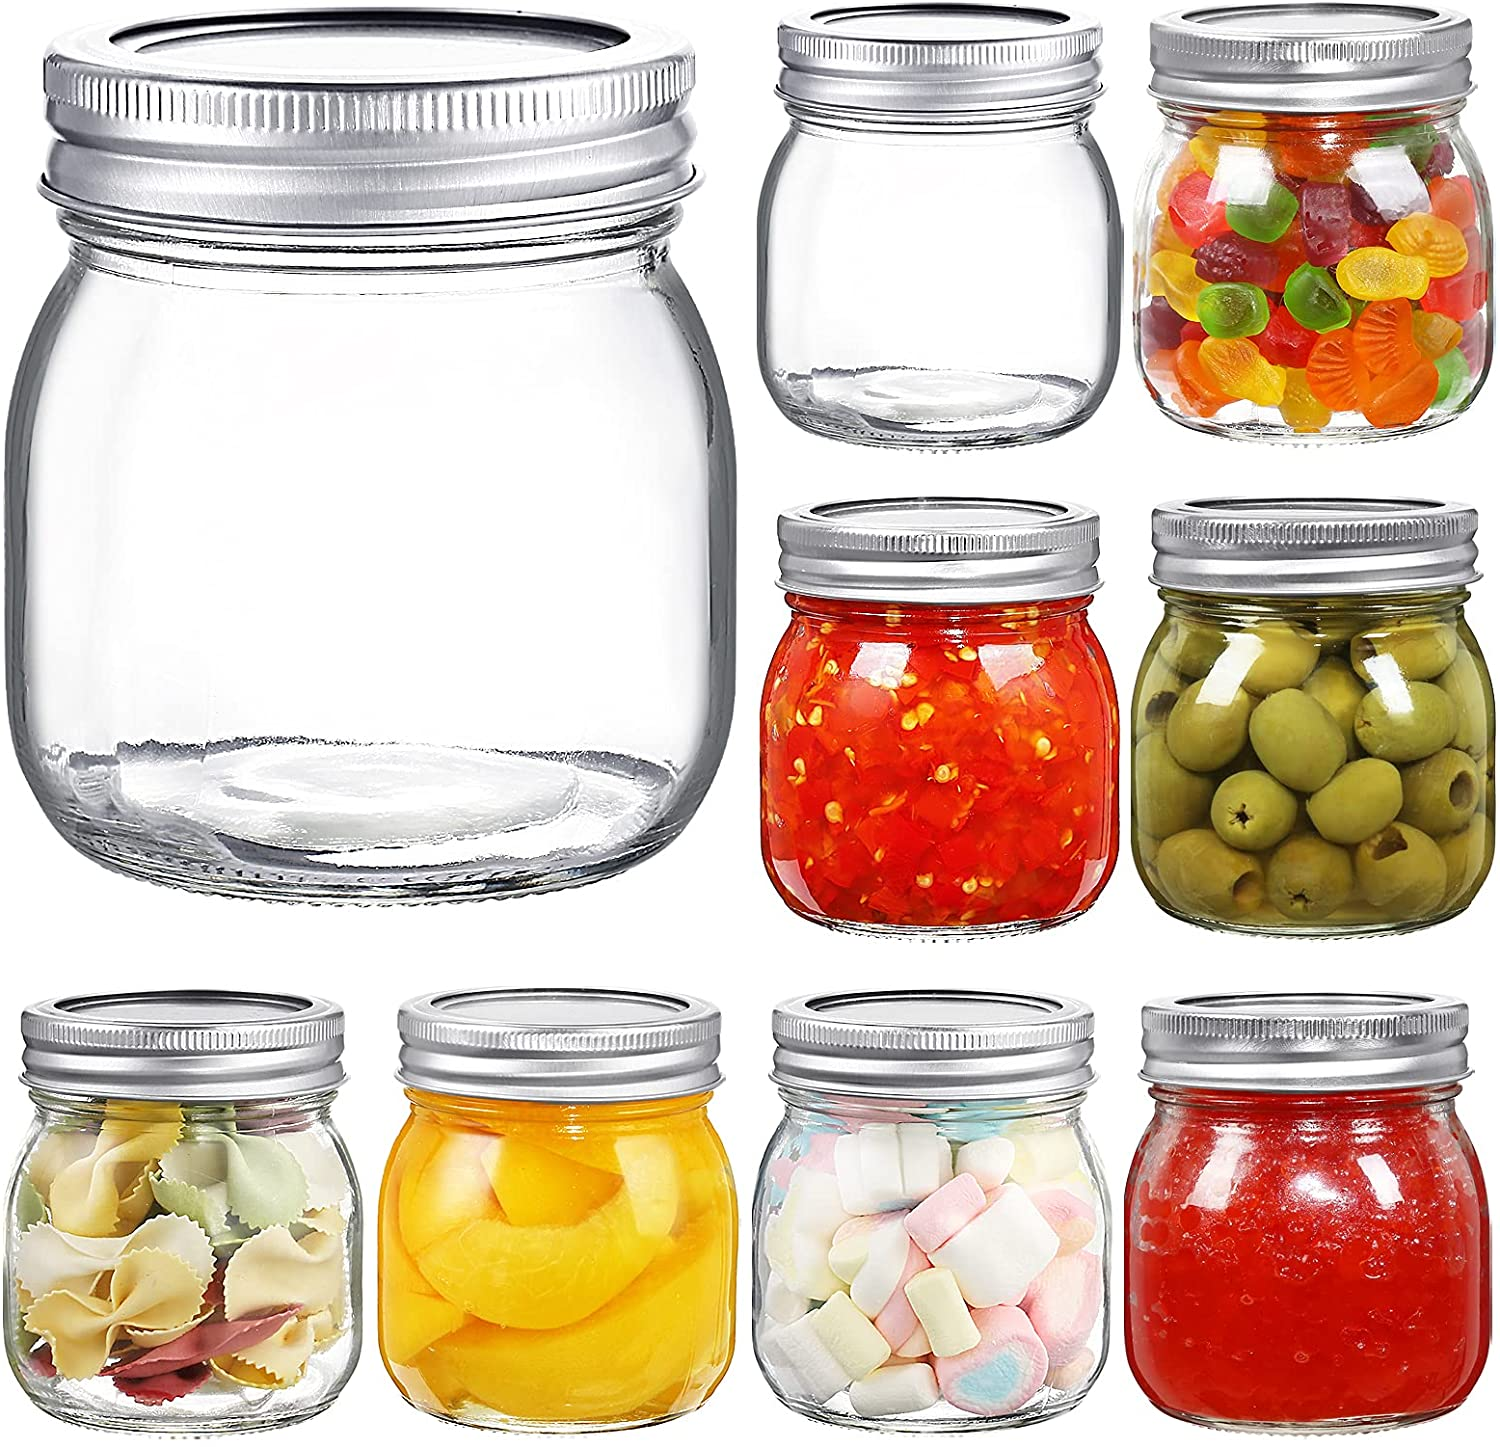 YEBODA 9 Mail order Pack Wide Mouth Mason 10 oz Glass wit Jars Max 78% OFF Canning